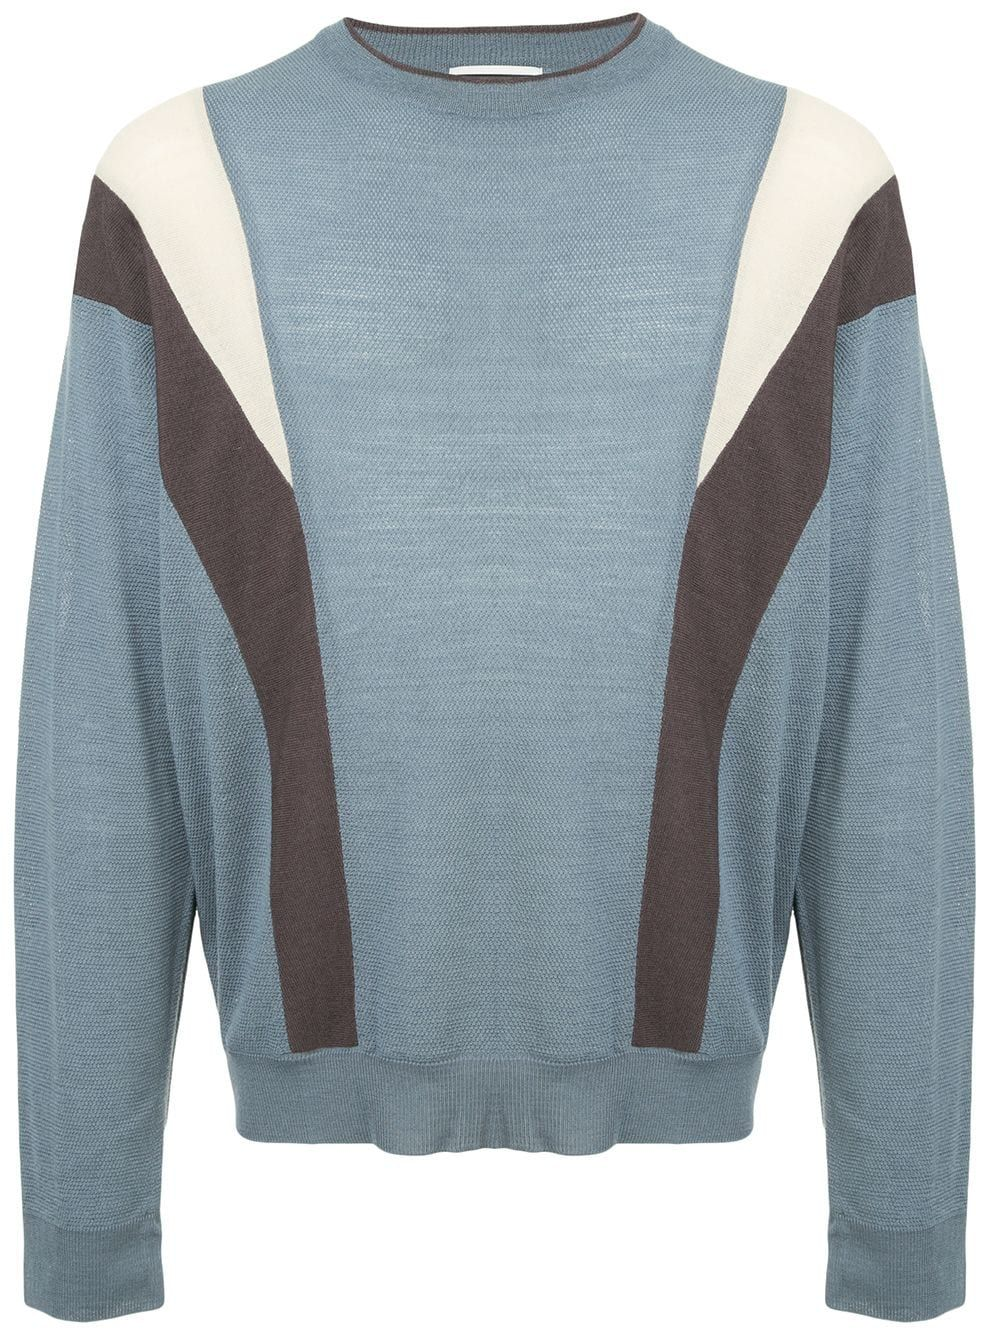 5c0440bfc9 WOOYOUNGMI WOOYOUNGMI PANELLED SWEATER - BLUE. #wooyoungmi #cloth ...